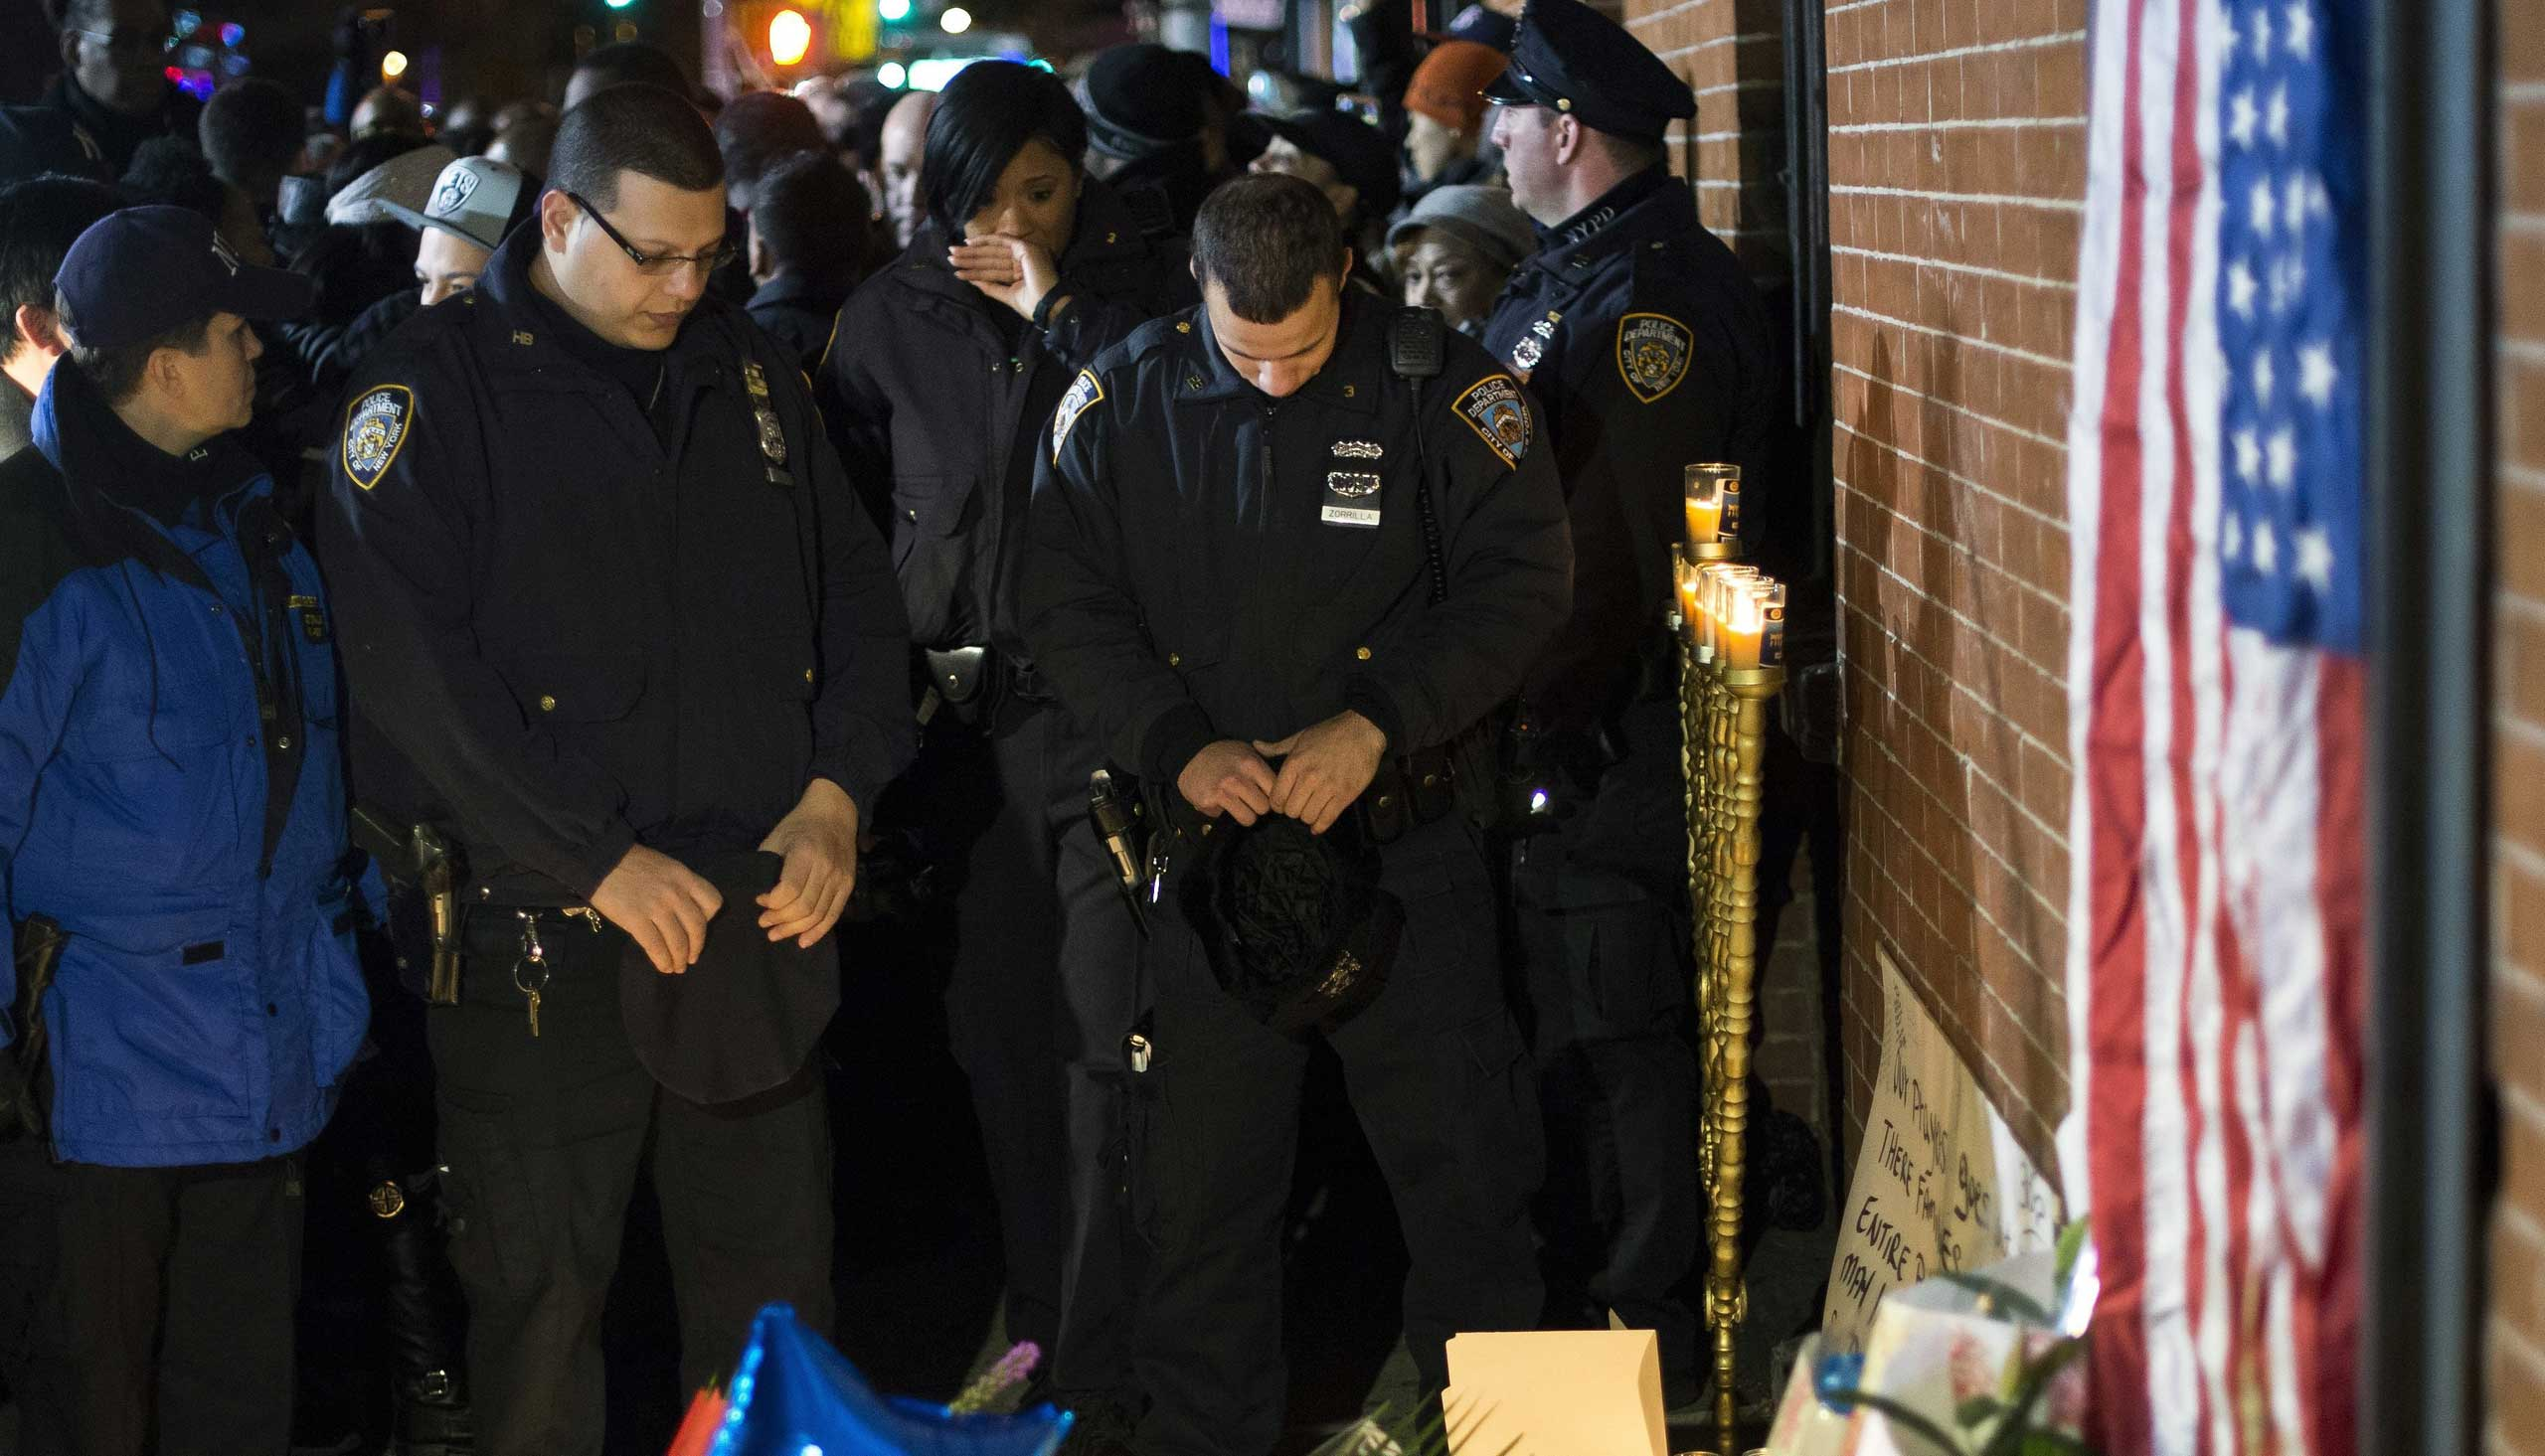 Police officers pause in front of a memorial for two police officers who were killed in Brooklyn, New York City, on Dec. 21, 2014.